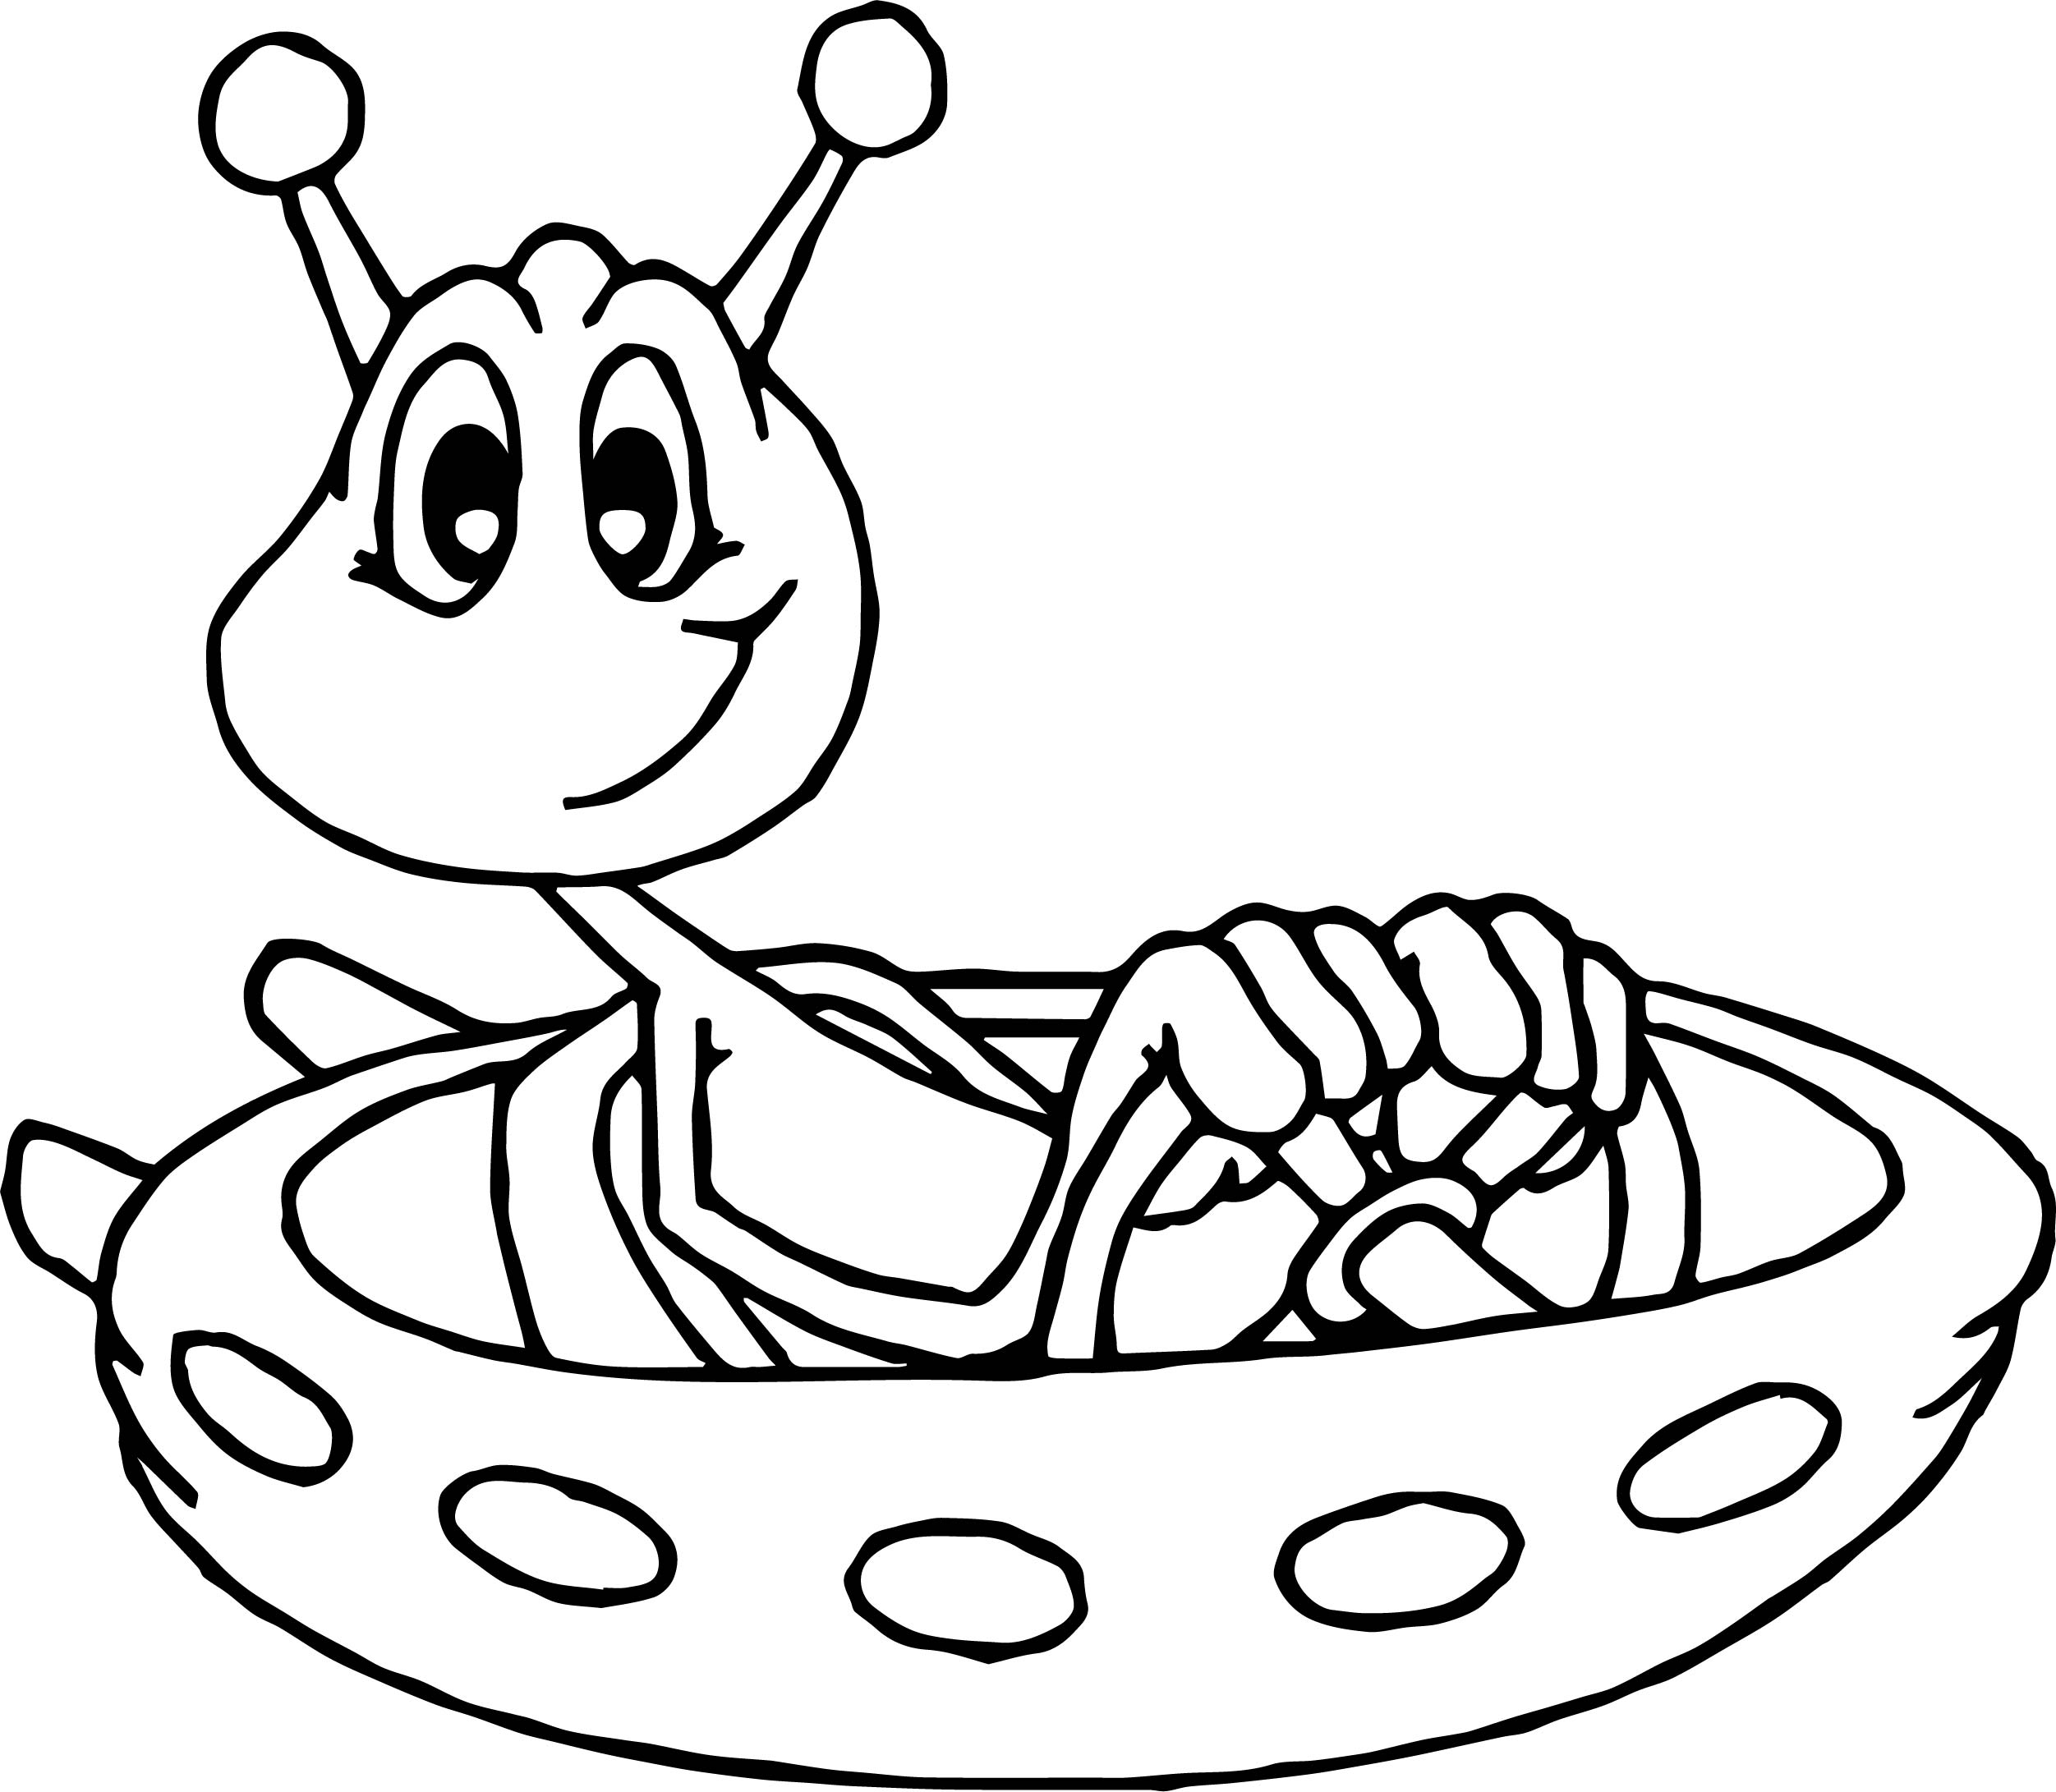 Space Astronaut Alien Coloring Page